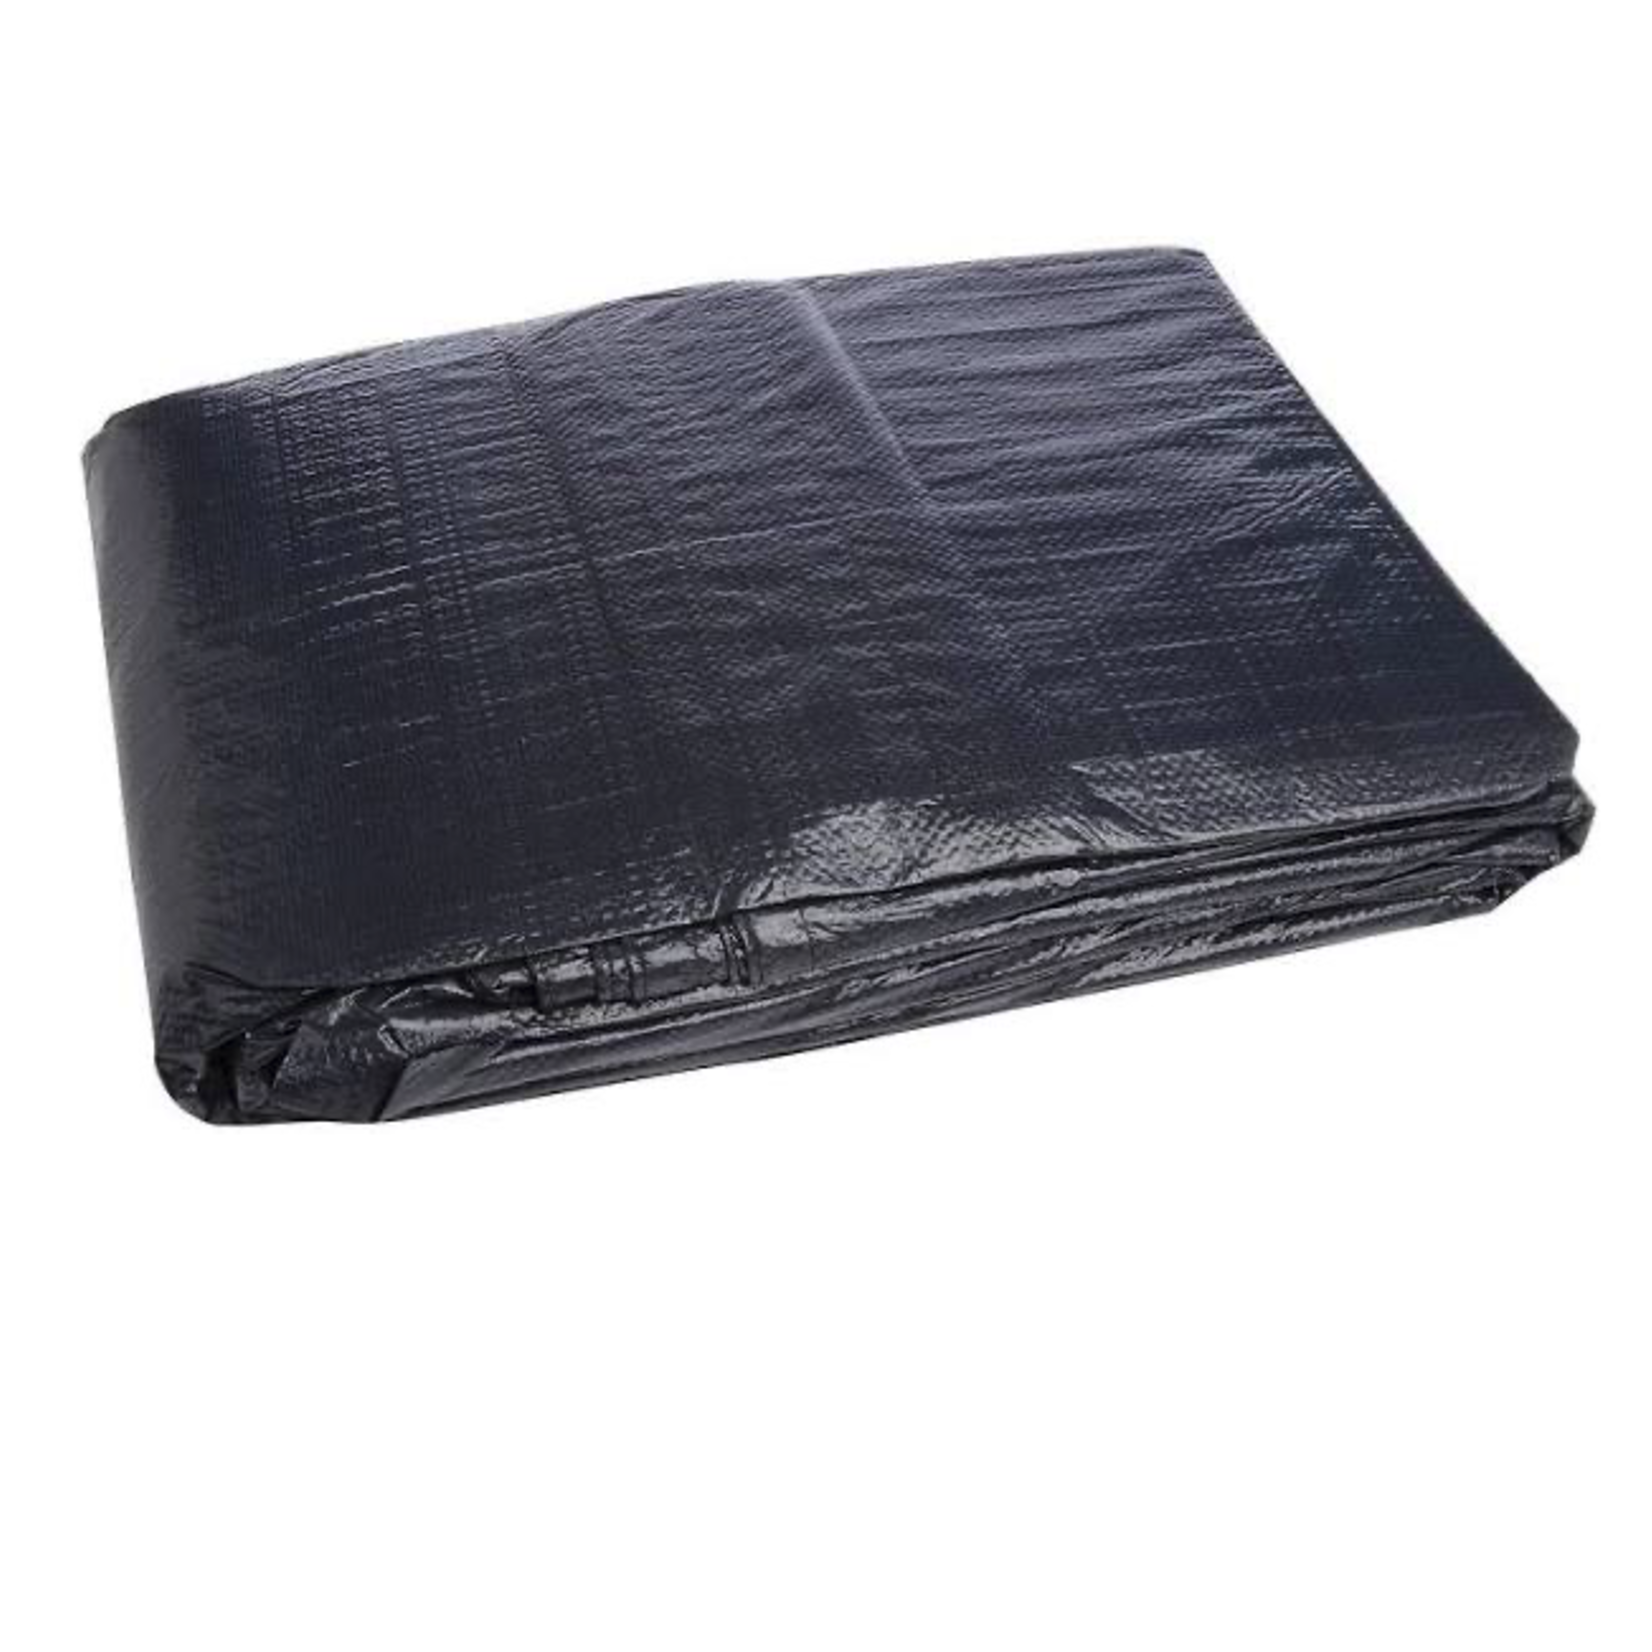 WINTER COVER OVAL 15X30 14YR